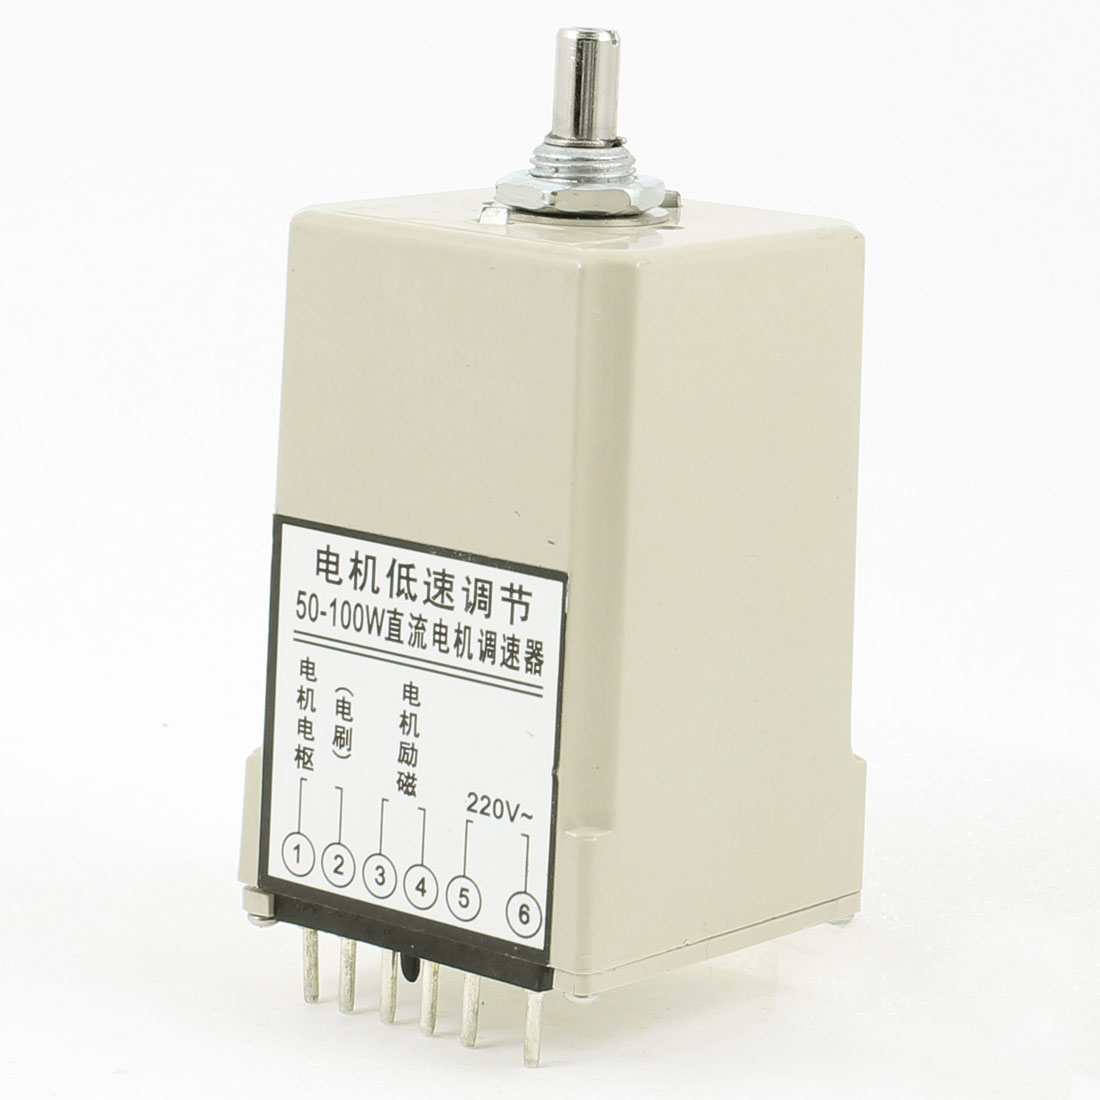 50-100W 6 Pins Plug DC Motor Low Speed Control Controller